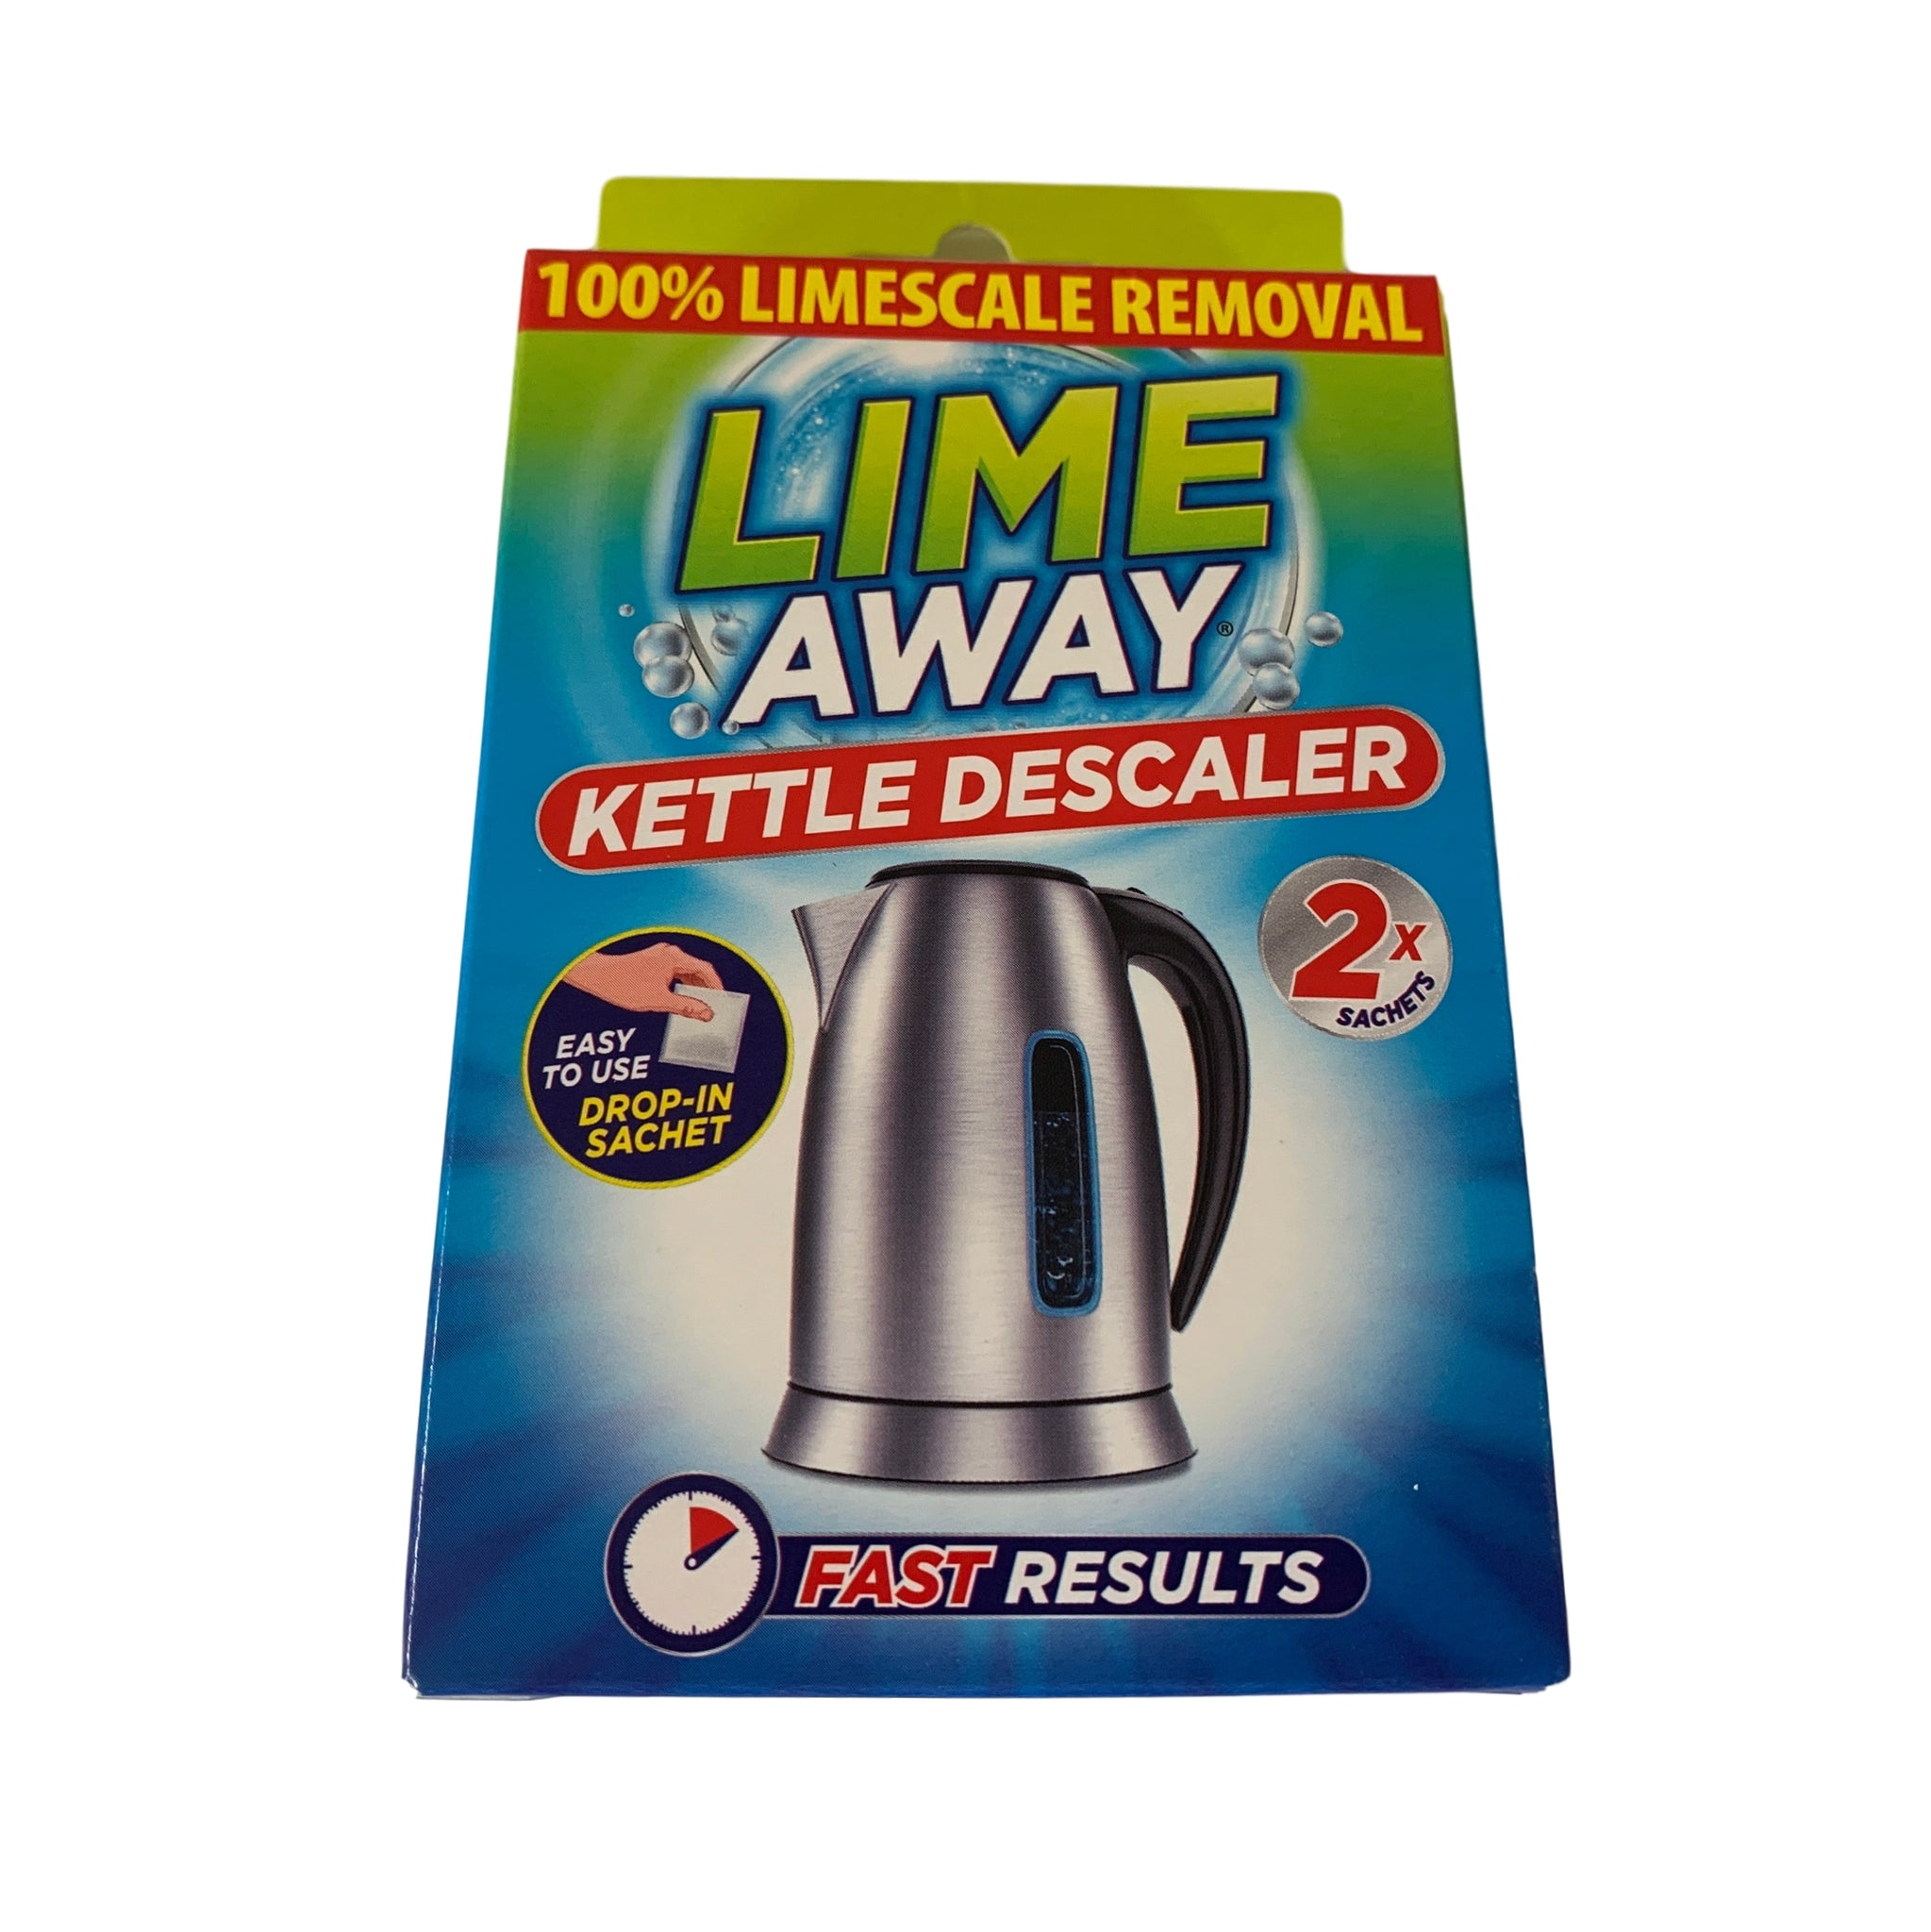 Pack of 2 Lime Away Kettle Descaler